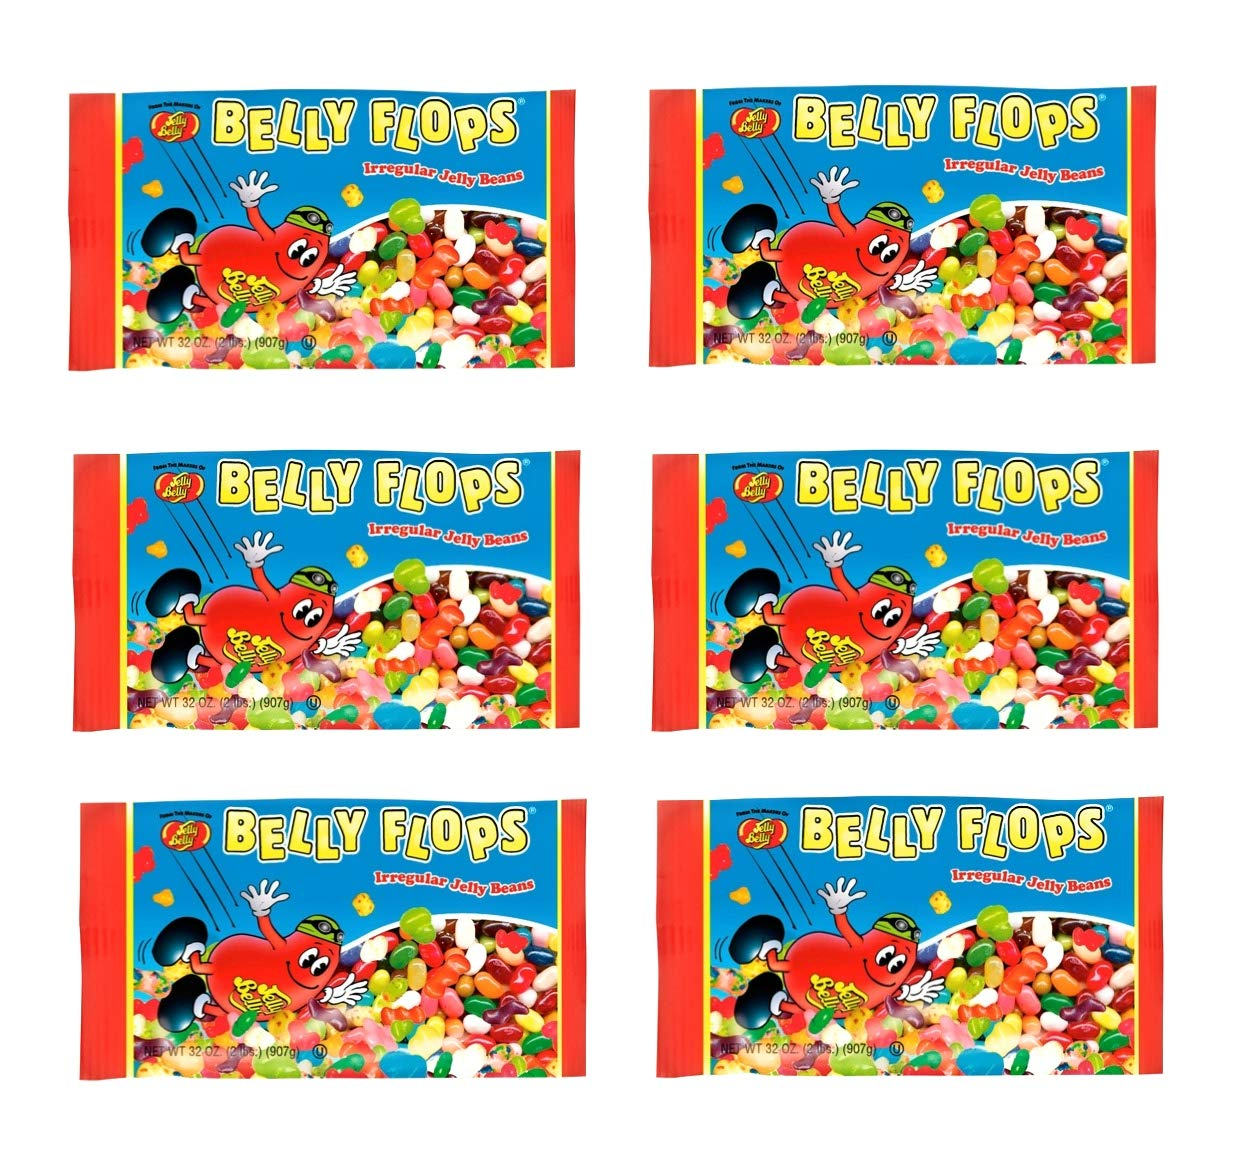 Jelly Belly, Belly Flops Jelly Beans - Pack of 6 Bags - 1 Pound per Bag by Jelly Belly